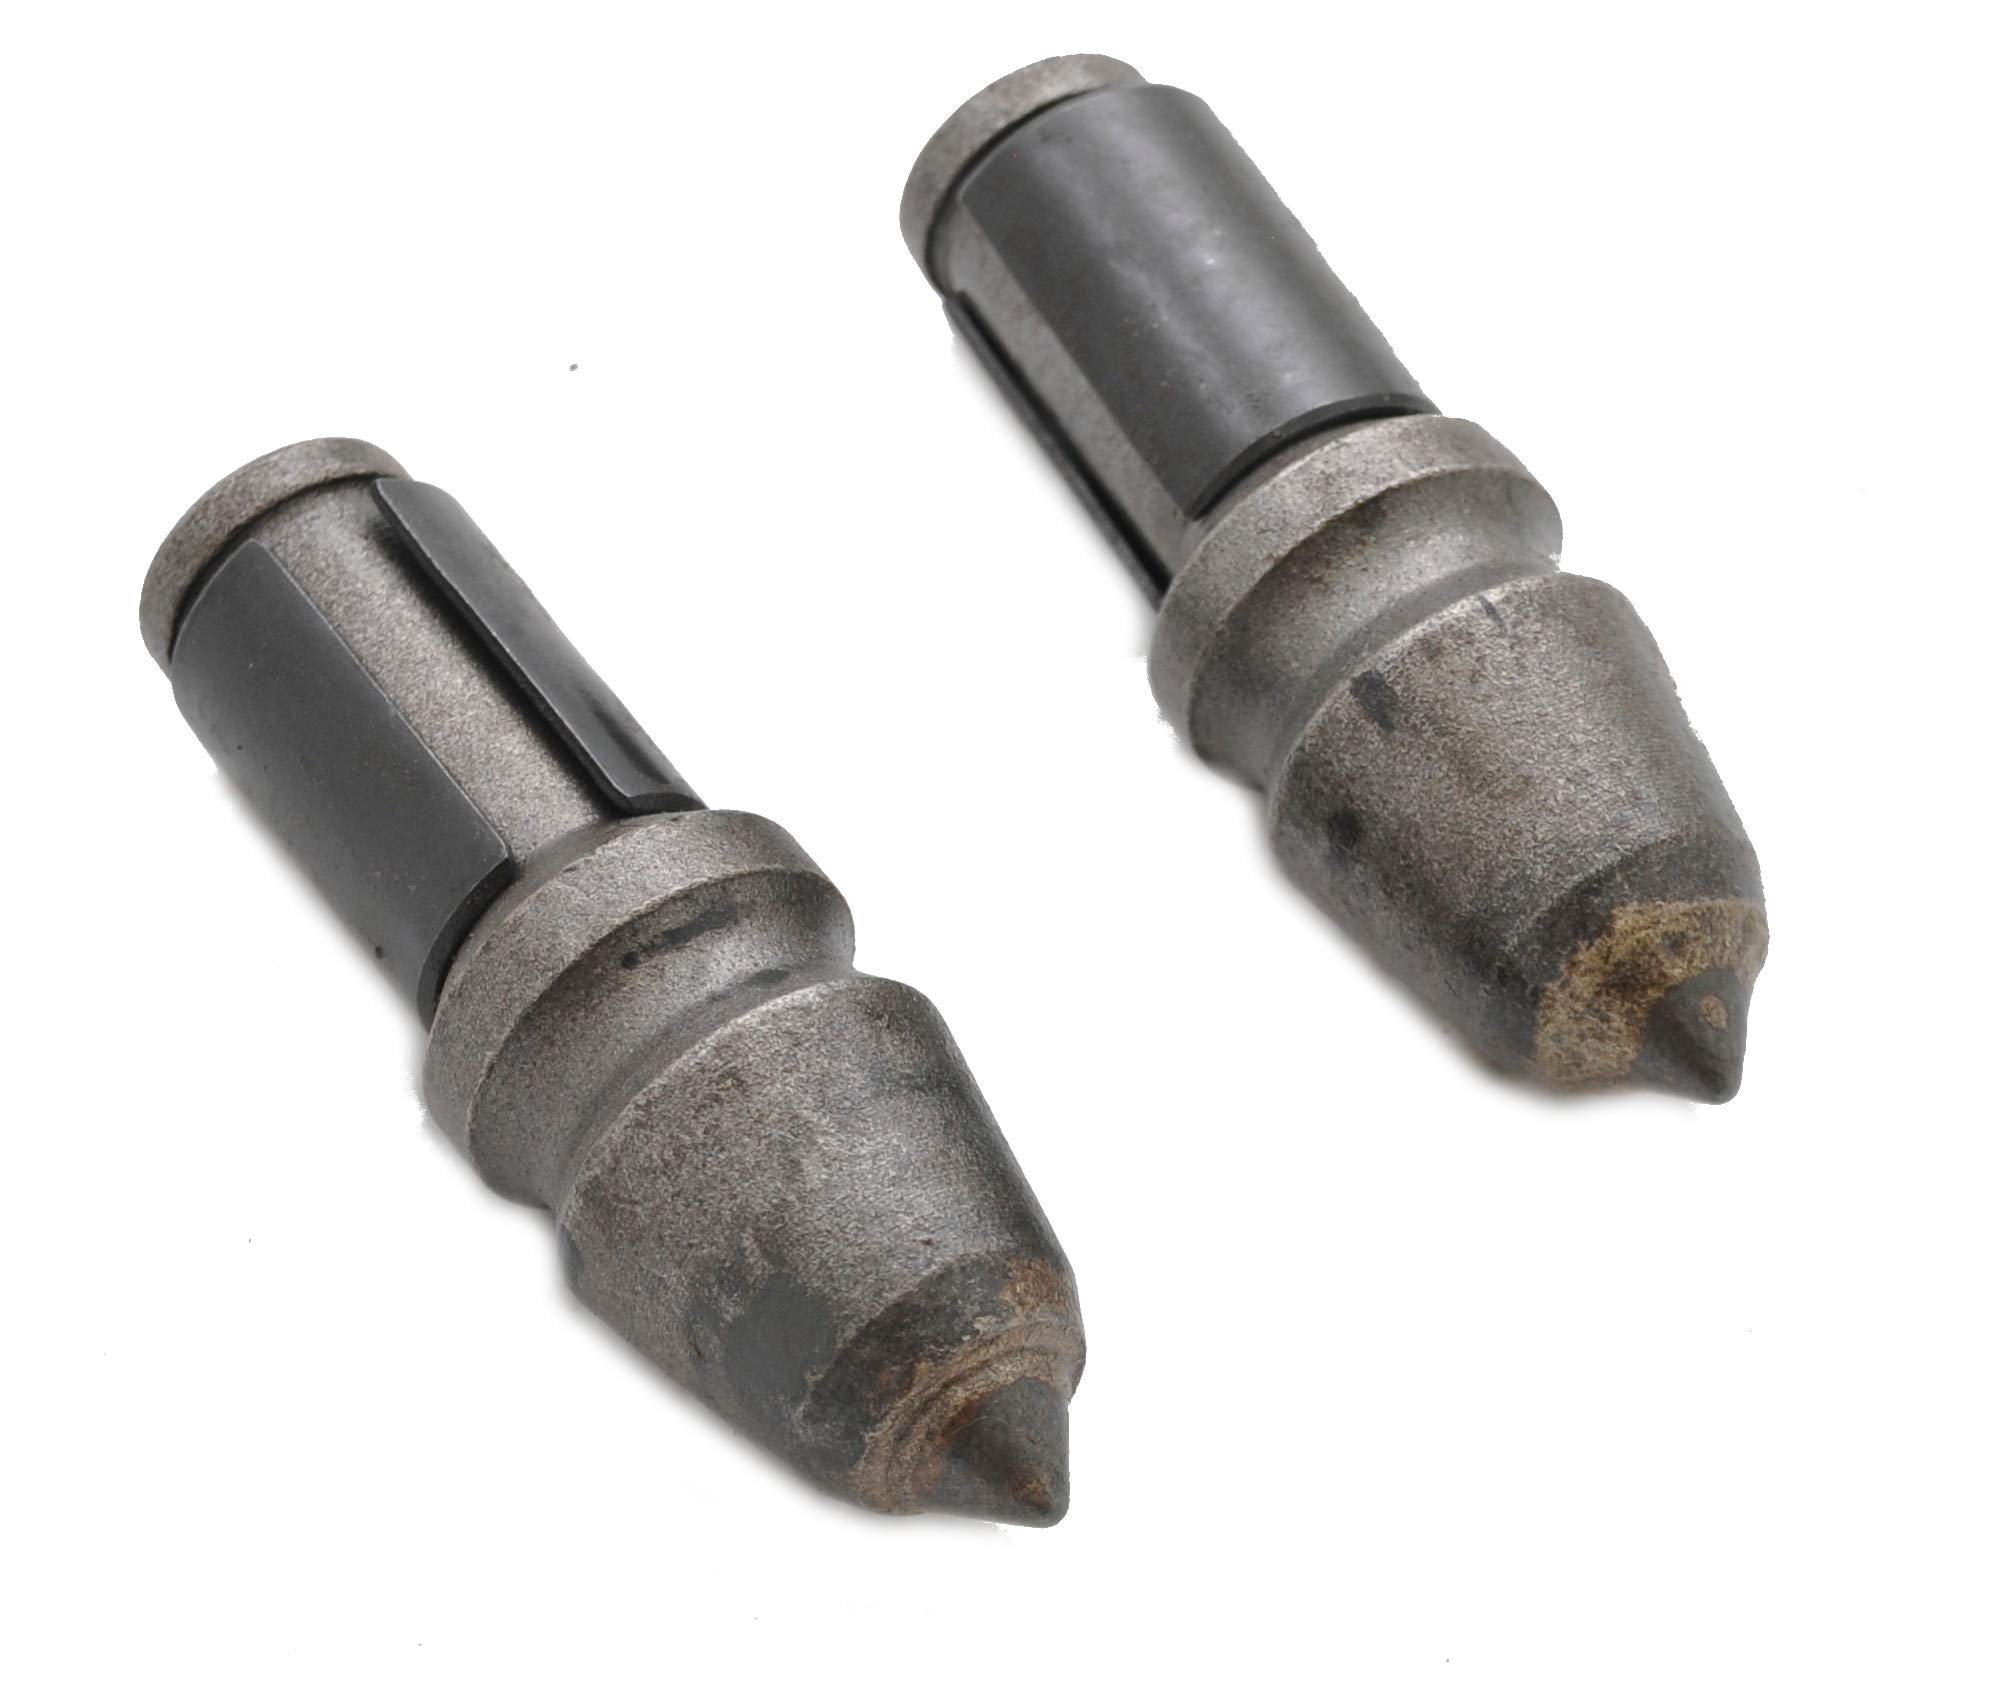 Pair of C21 Carbide Bullet Teeth for Rock Augers by ToolTuff